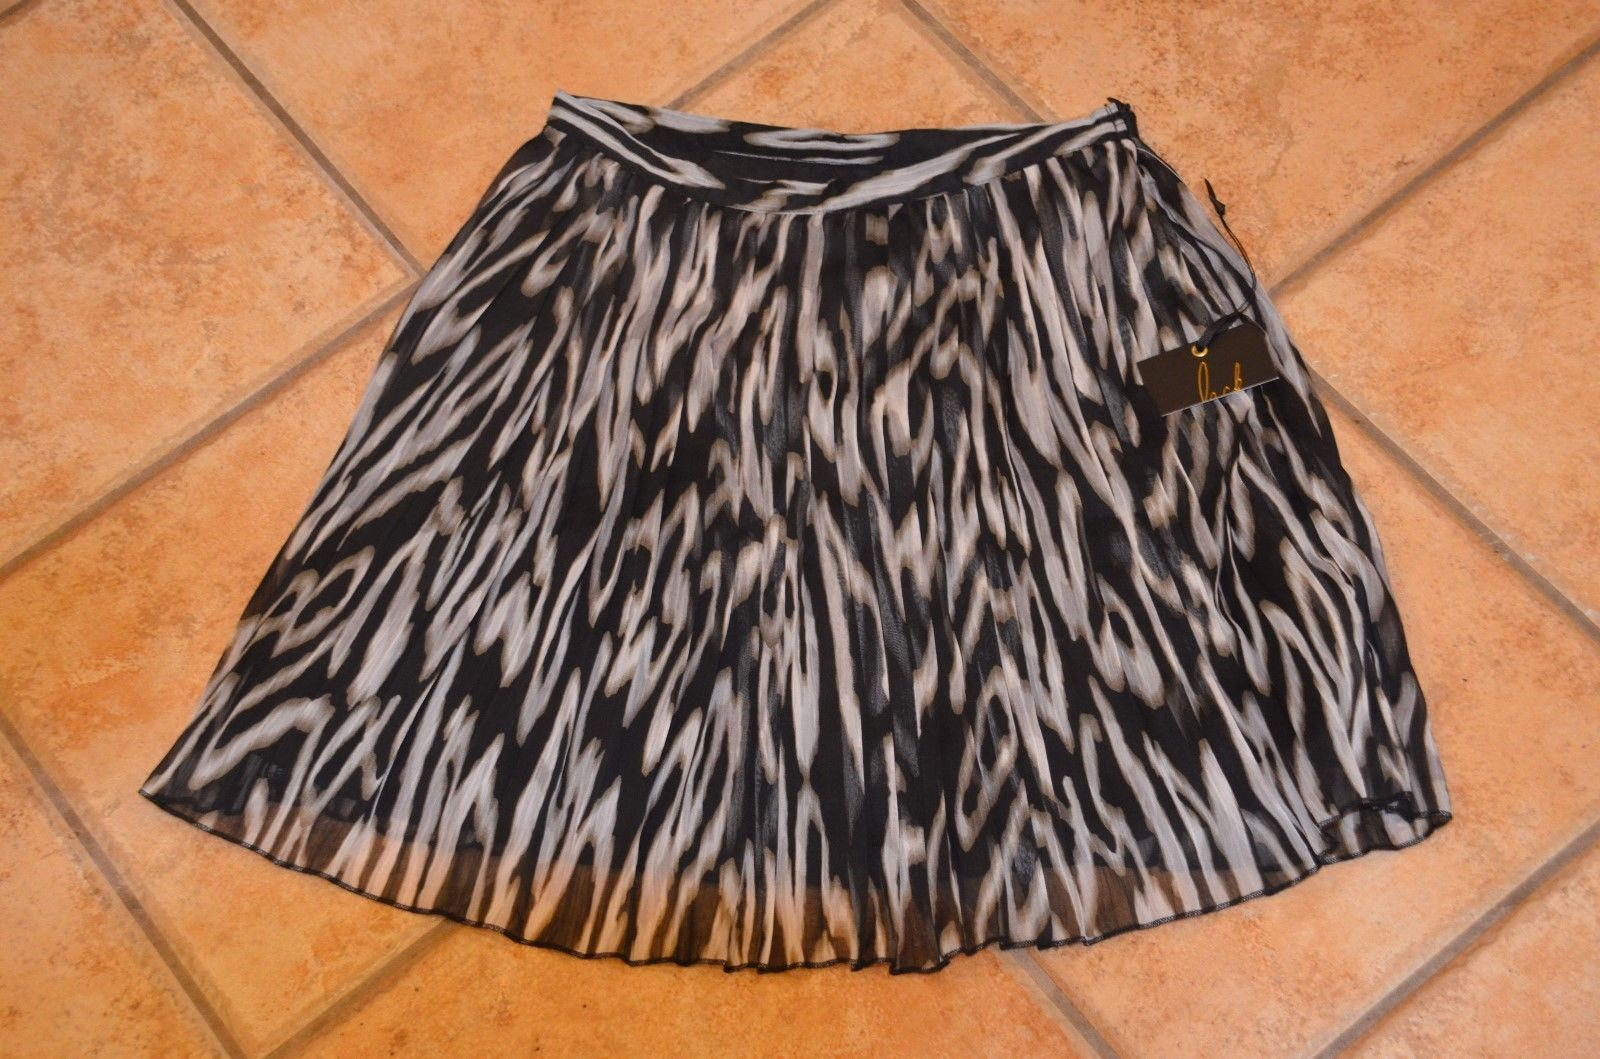 9a0dea39953e Anthropologie 4 Black White Grey and 50 similar items. S l1600